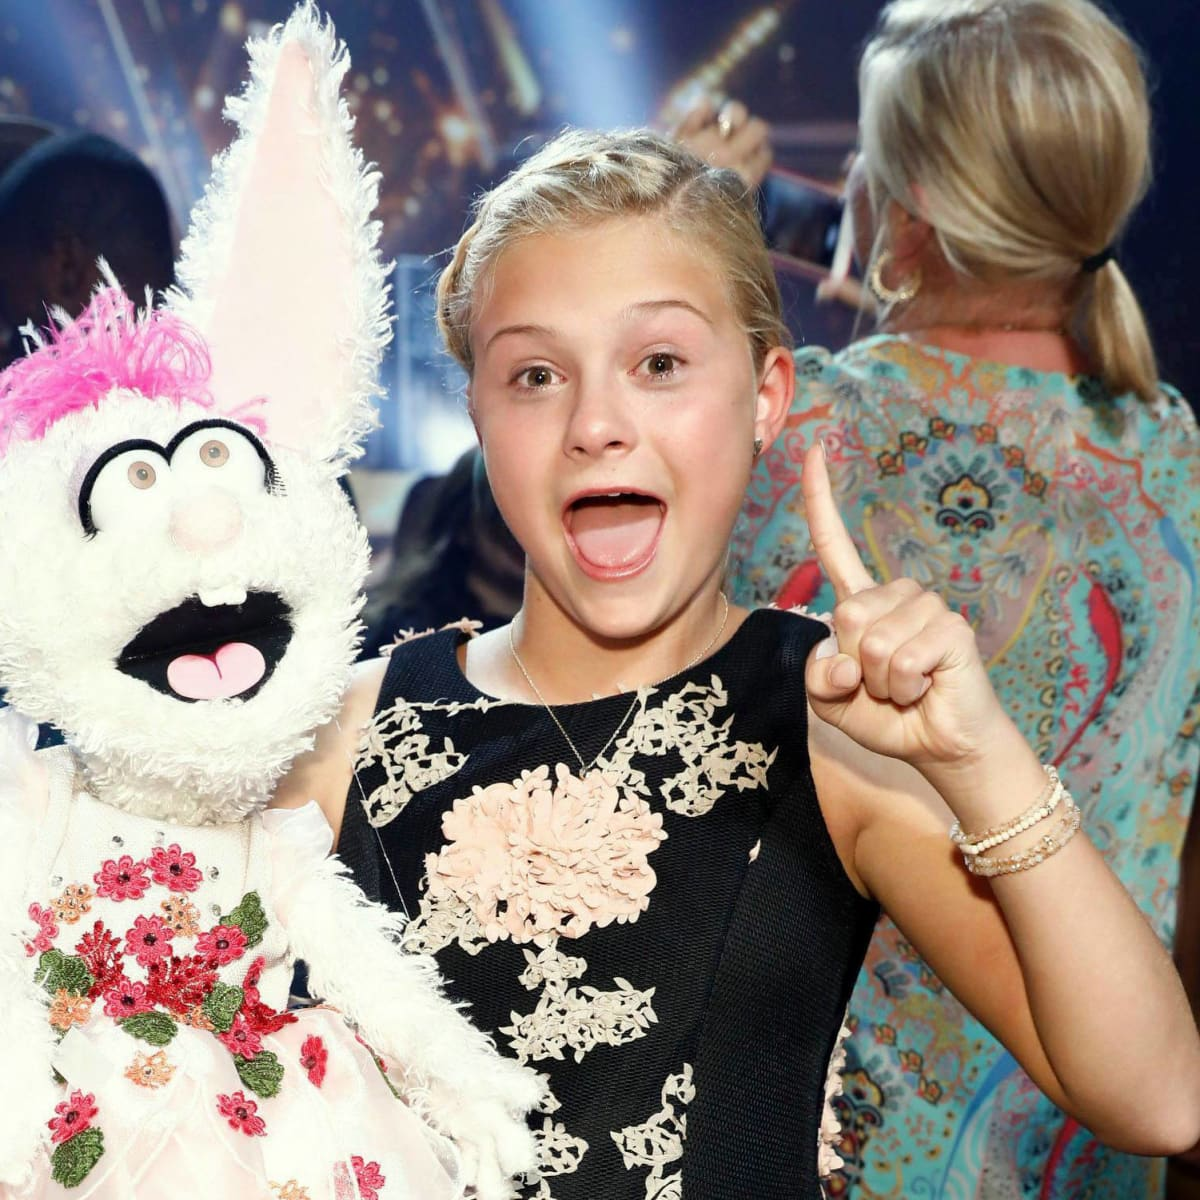 Houston, Americas Got Talent, Darci Lynne Farmer, Sept 2017